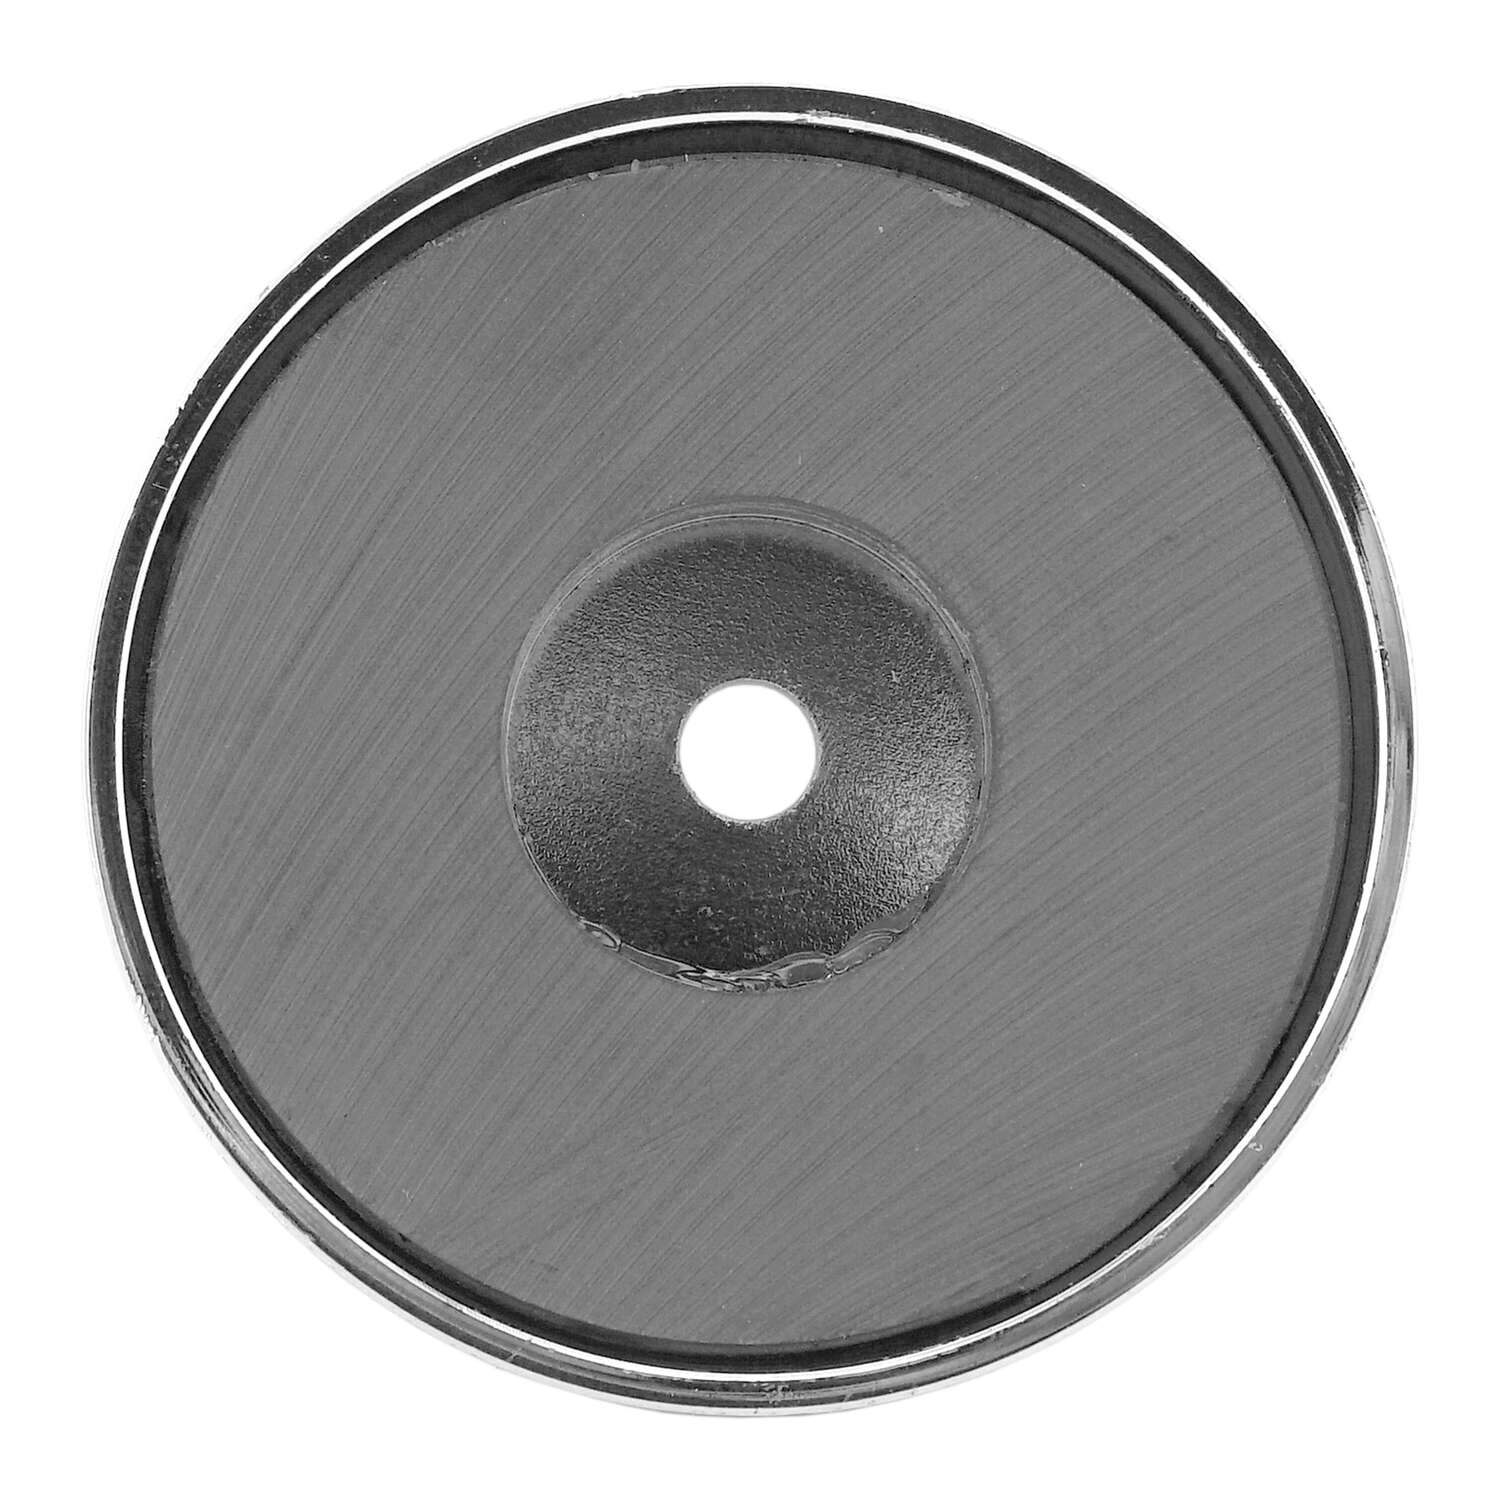 Master Magnetics  The Magnet Source  .375 in. Ceramic  Round Base  Round Base Magnet  65 lb. 3.4 MGO